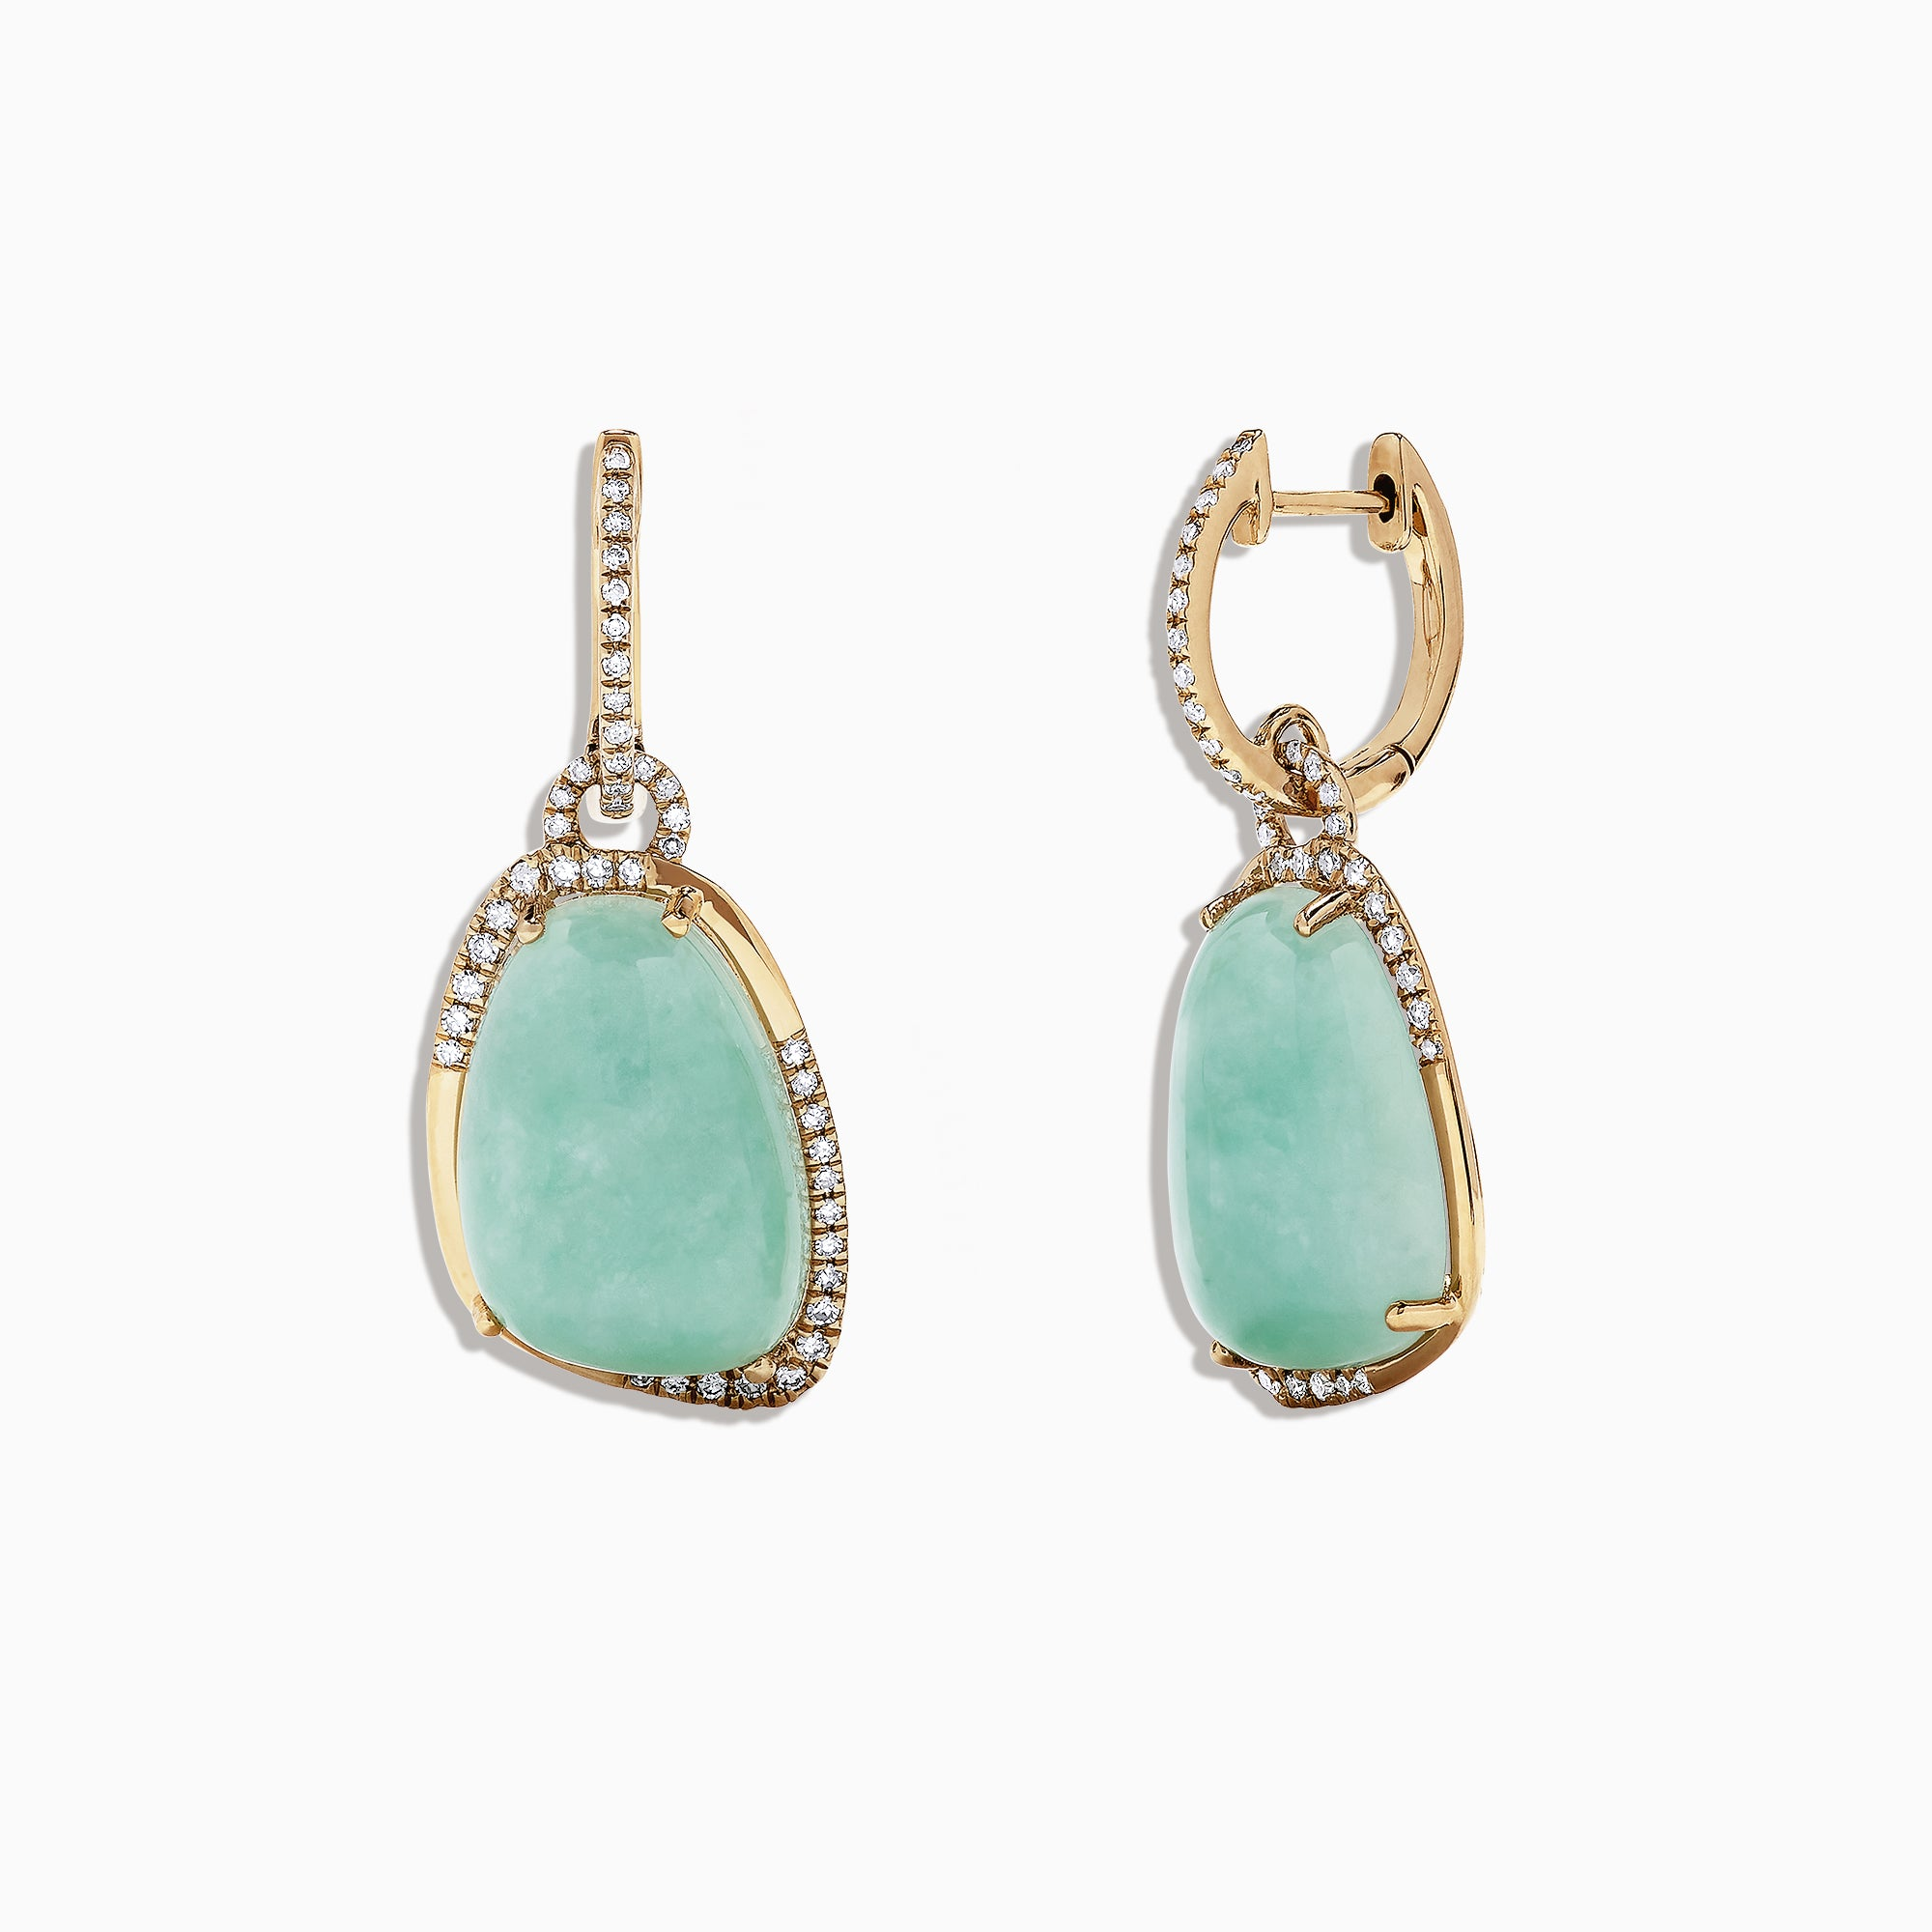 Effy 14K Yellow Gold Jade and Diamond Earring, 19.24 TCW